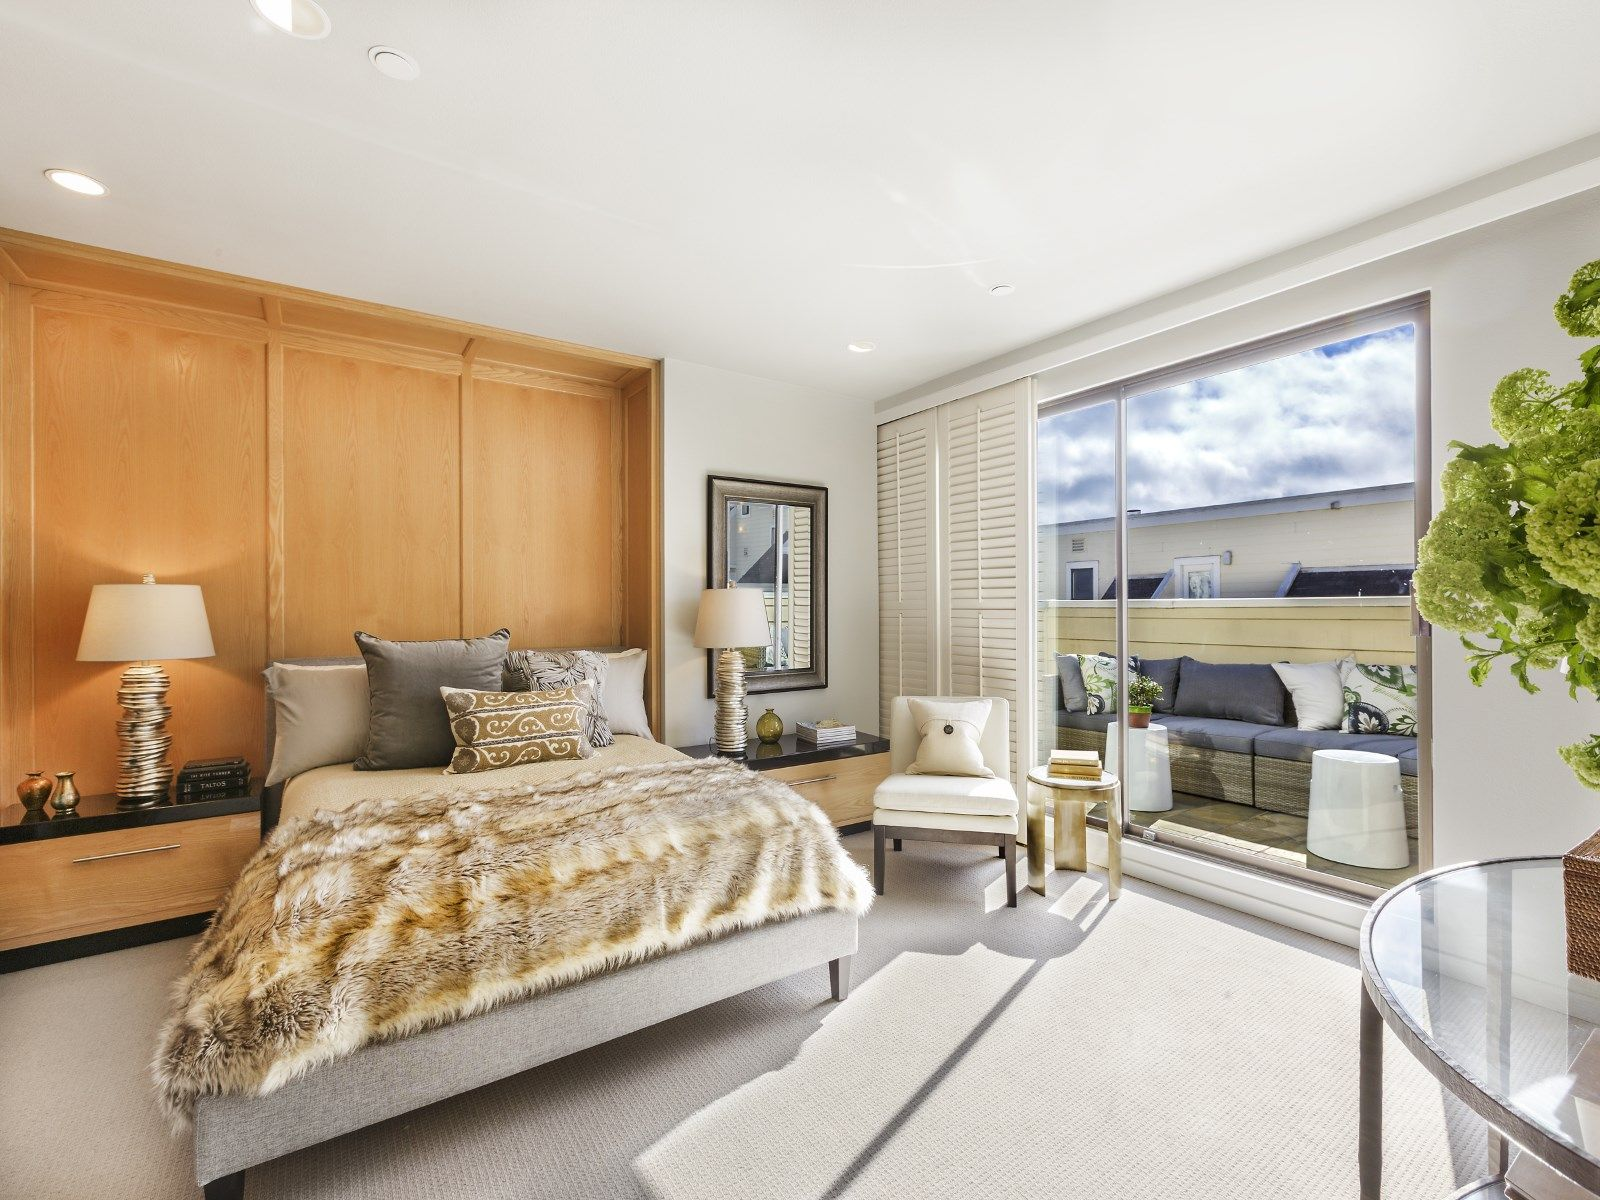 2185 Bush St Apt 315 San Francisco Ca 94115 Pacific Heights Condo With Images Home Luxury Real Estate Estate Homes